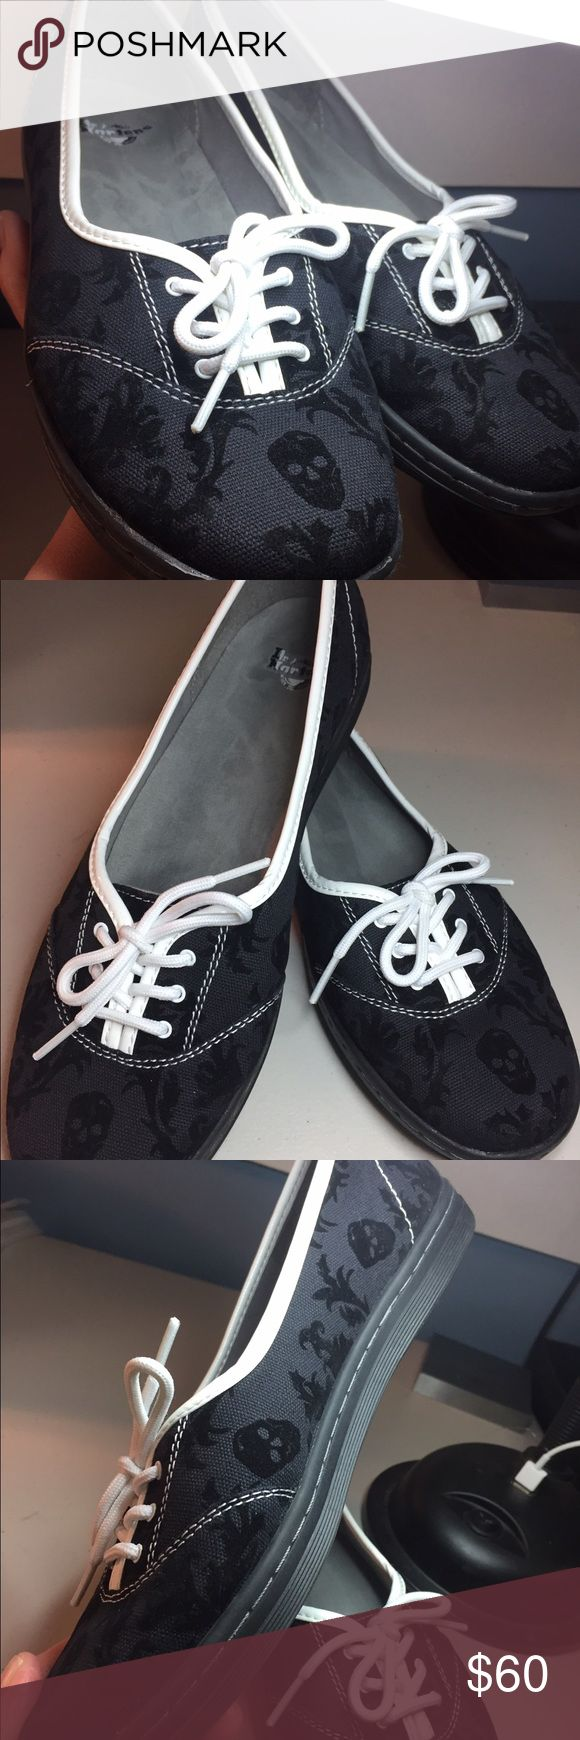 "Dr. Marten's ""Portobello"" skull canvas shoes. Black Canvas slip on shoes with skulls, white trim and laces. Ladies size 10.  Never worn outside.  Inside logo color has lifted due to insert I placed in them to try to fit me better.  Very cool shoes! Dr. Martens Shoes"